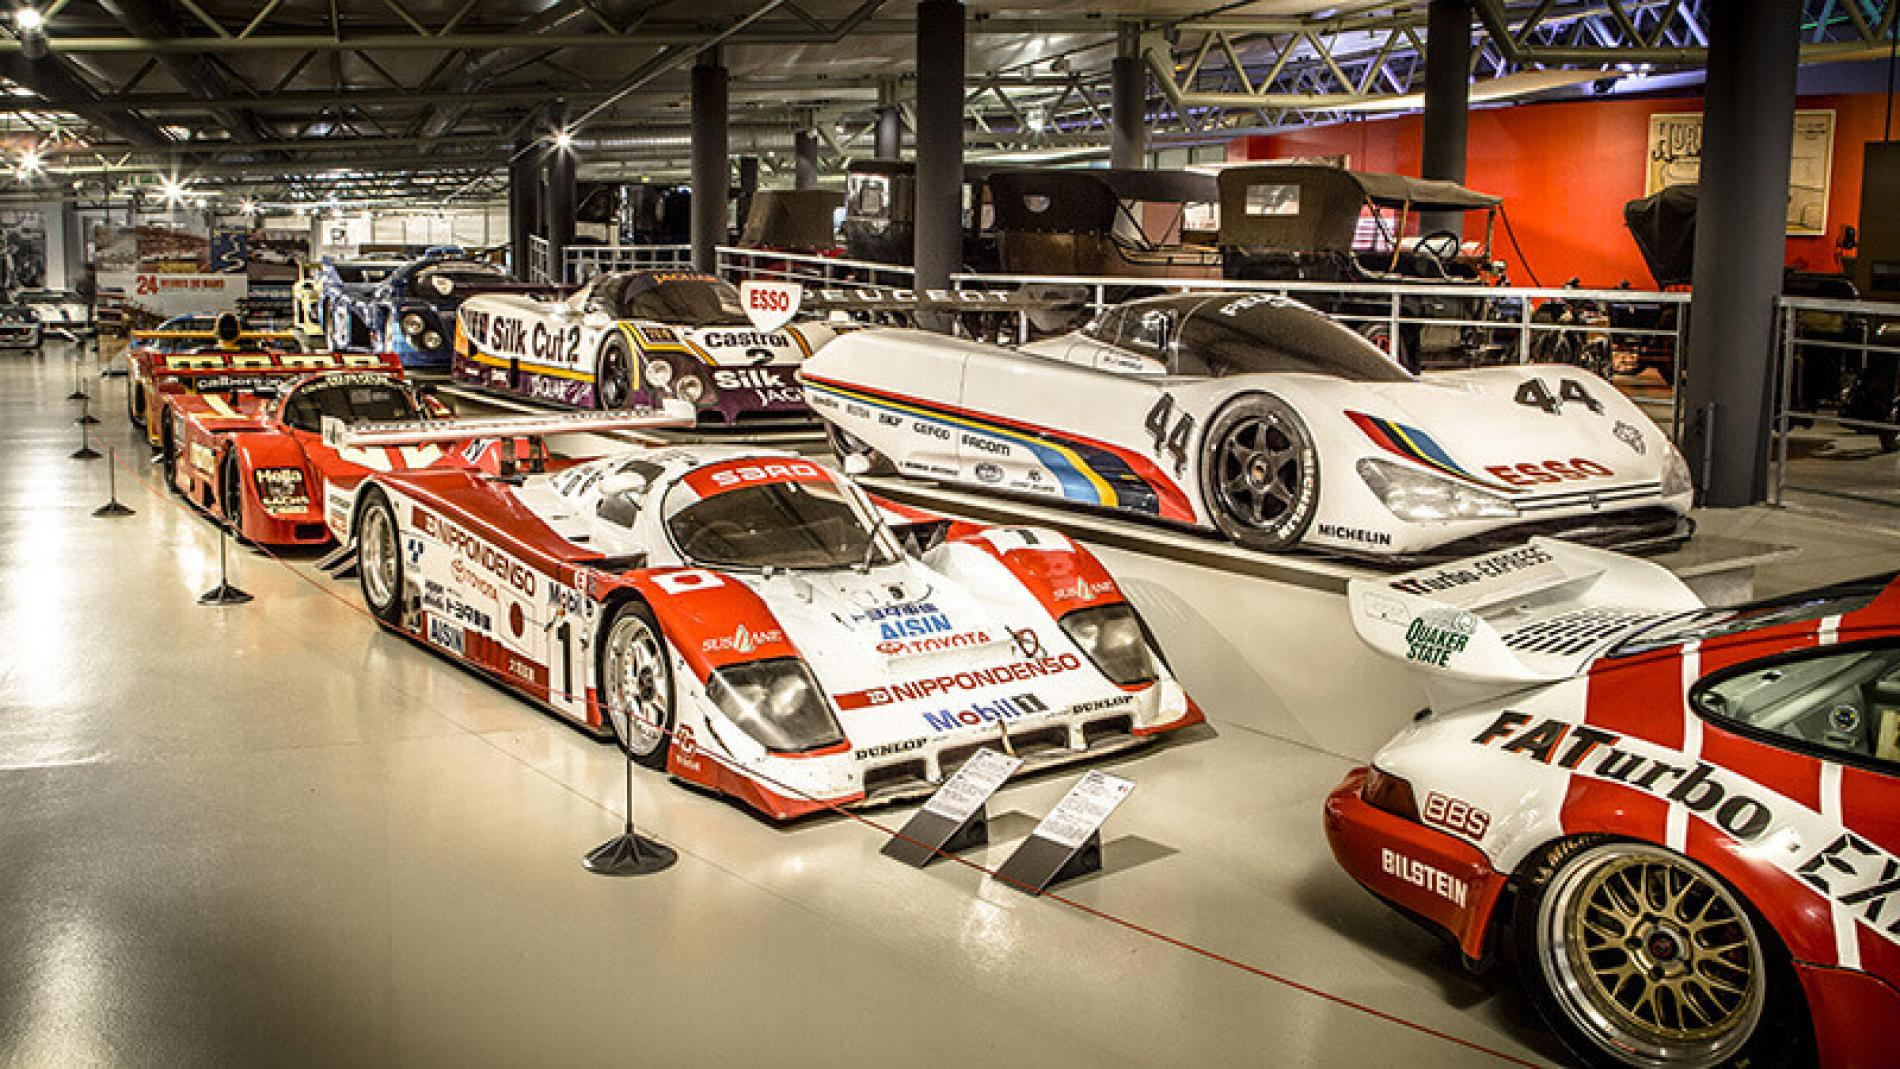 The Le Mans 24 hour museum